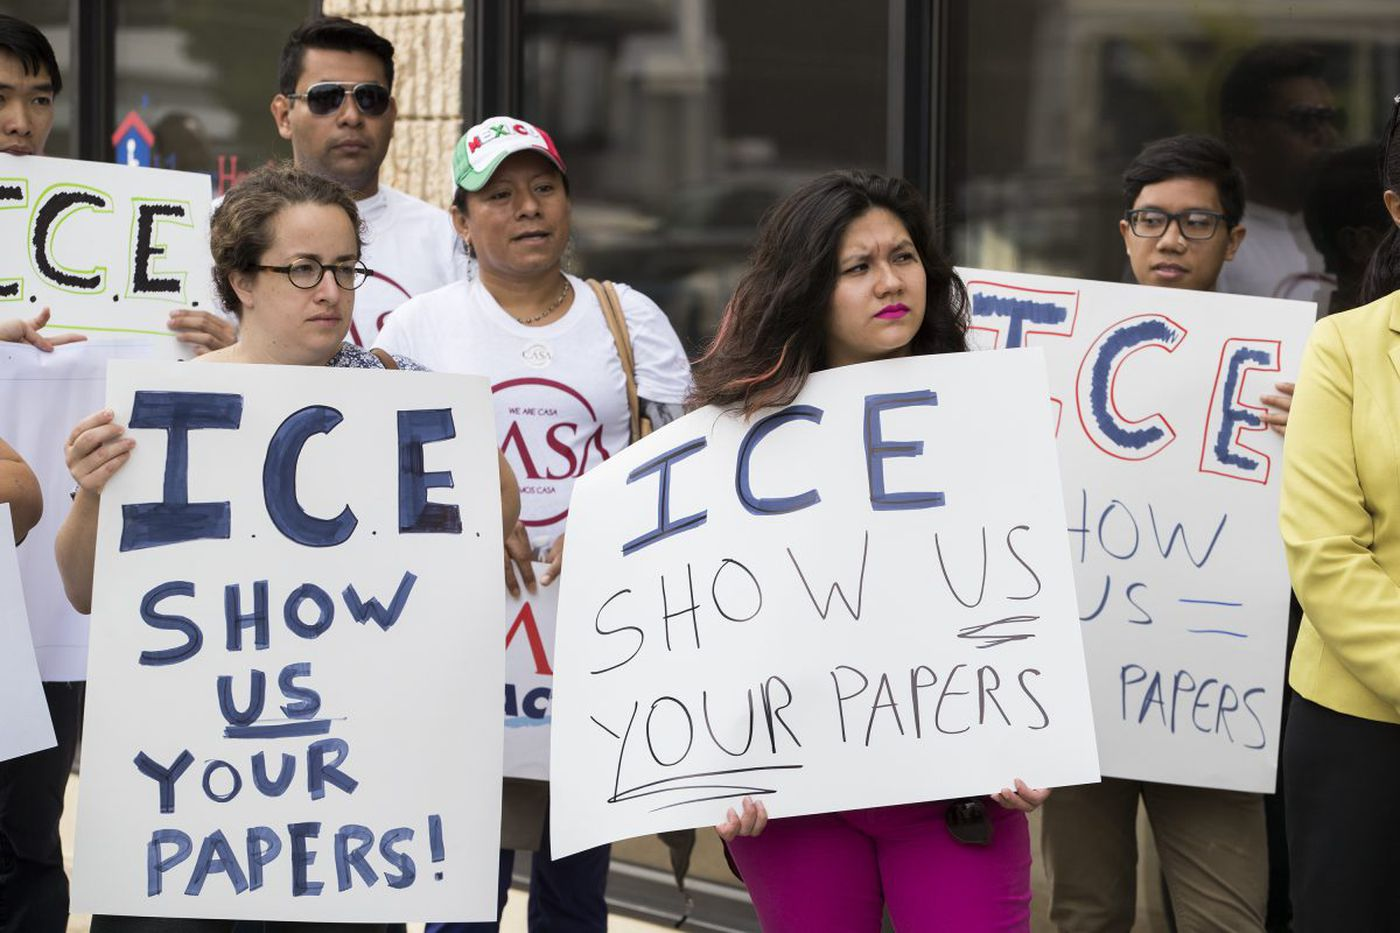 Could ICE arrest immigrant family in church sanctuary?